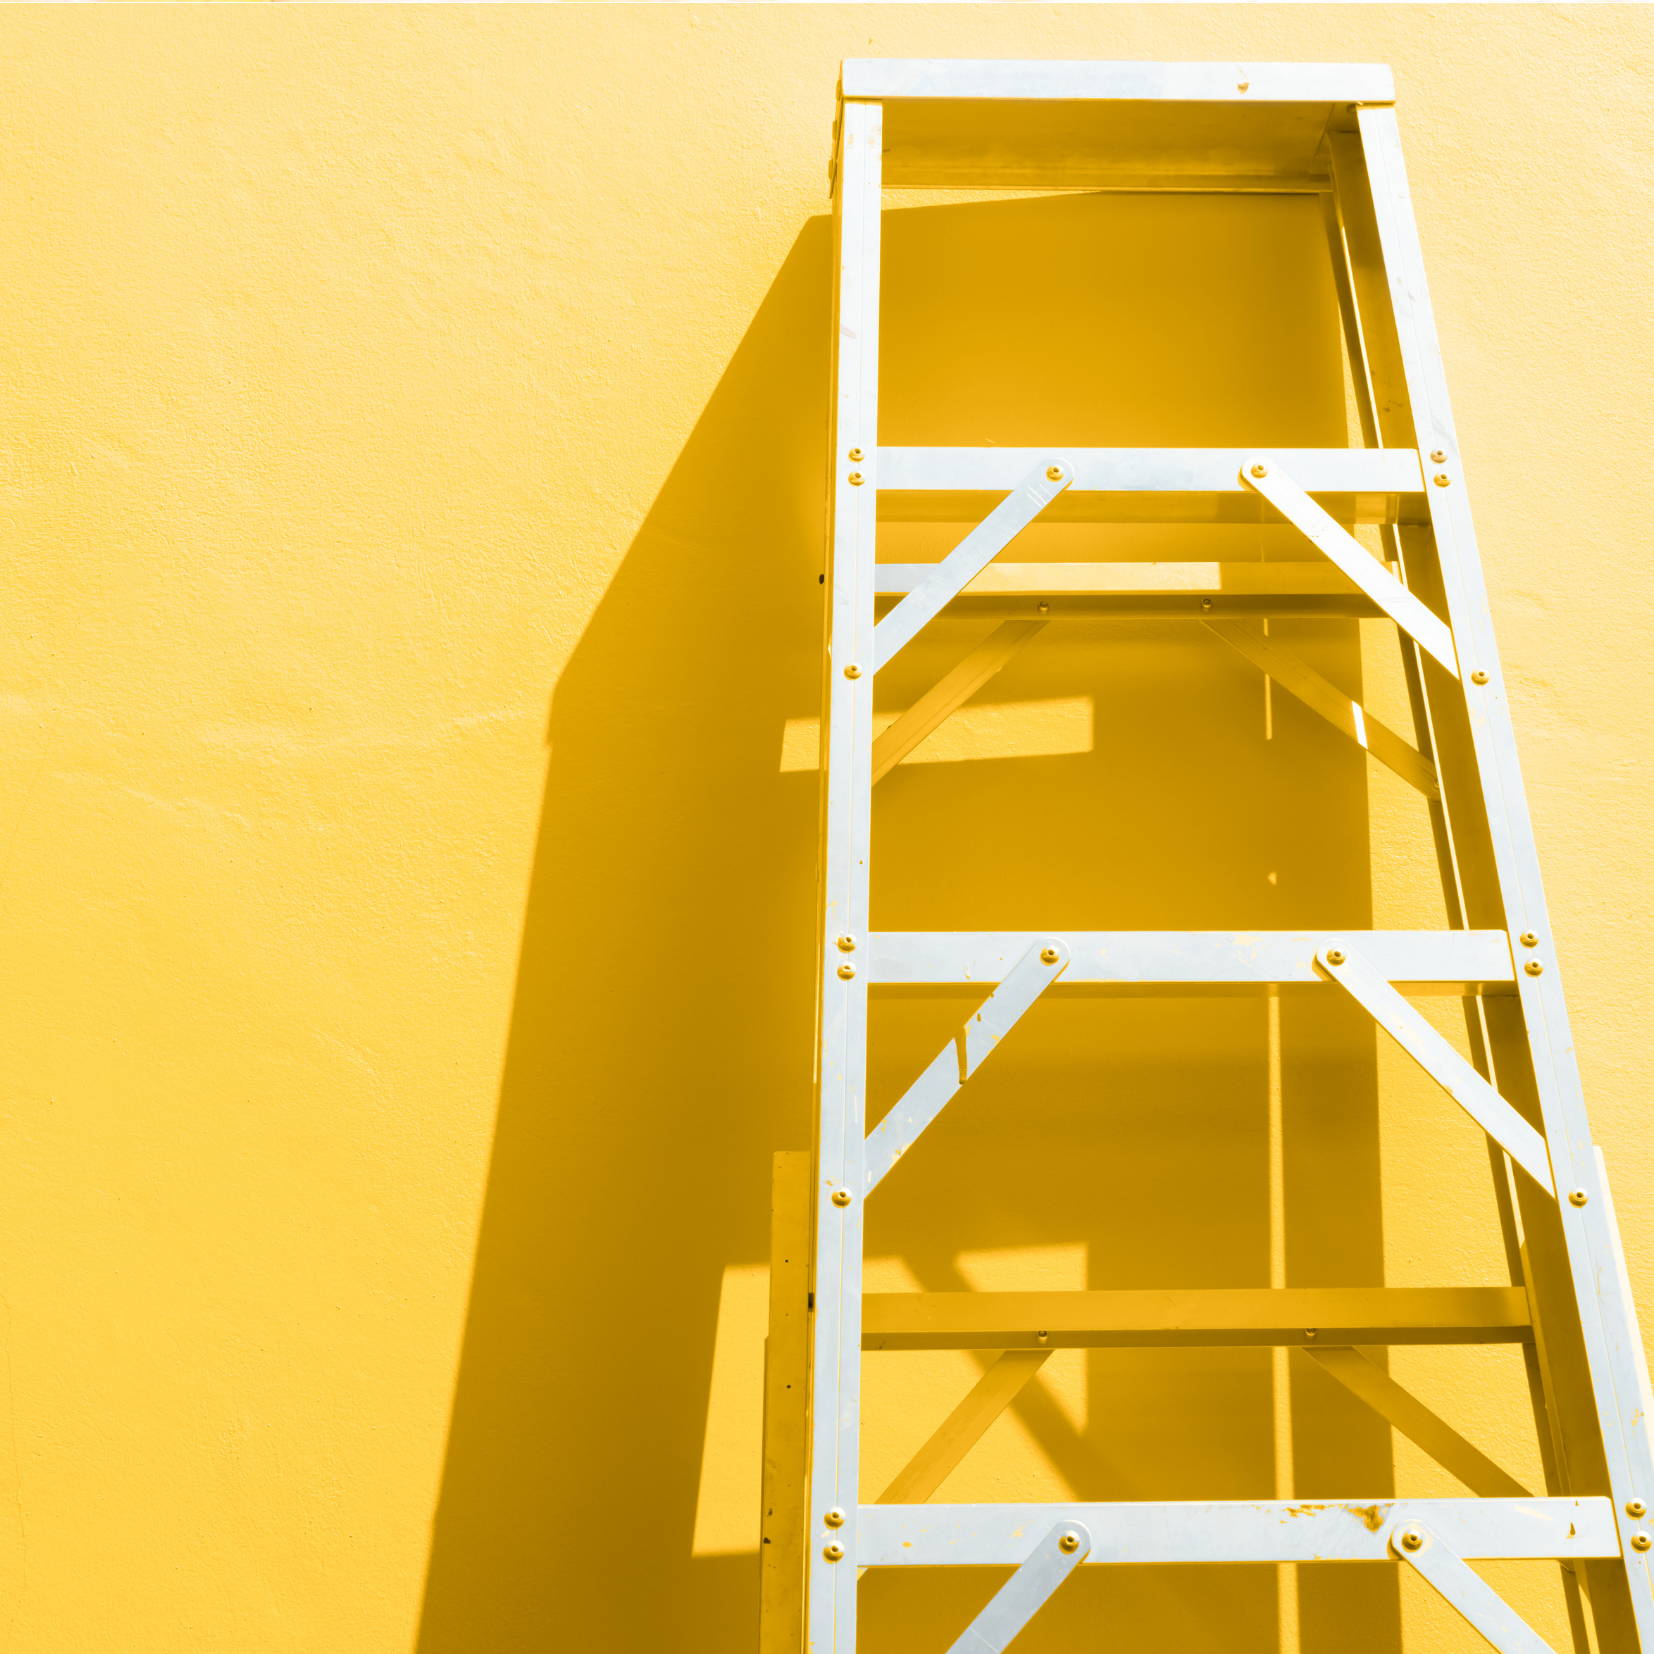 Ladder on yellow background Depicting Eating Disorder for Van Dusen Nutrition